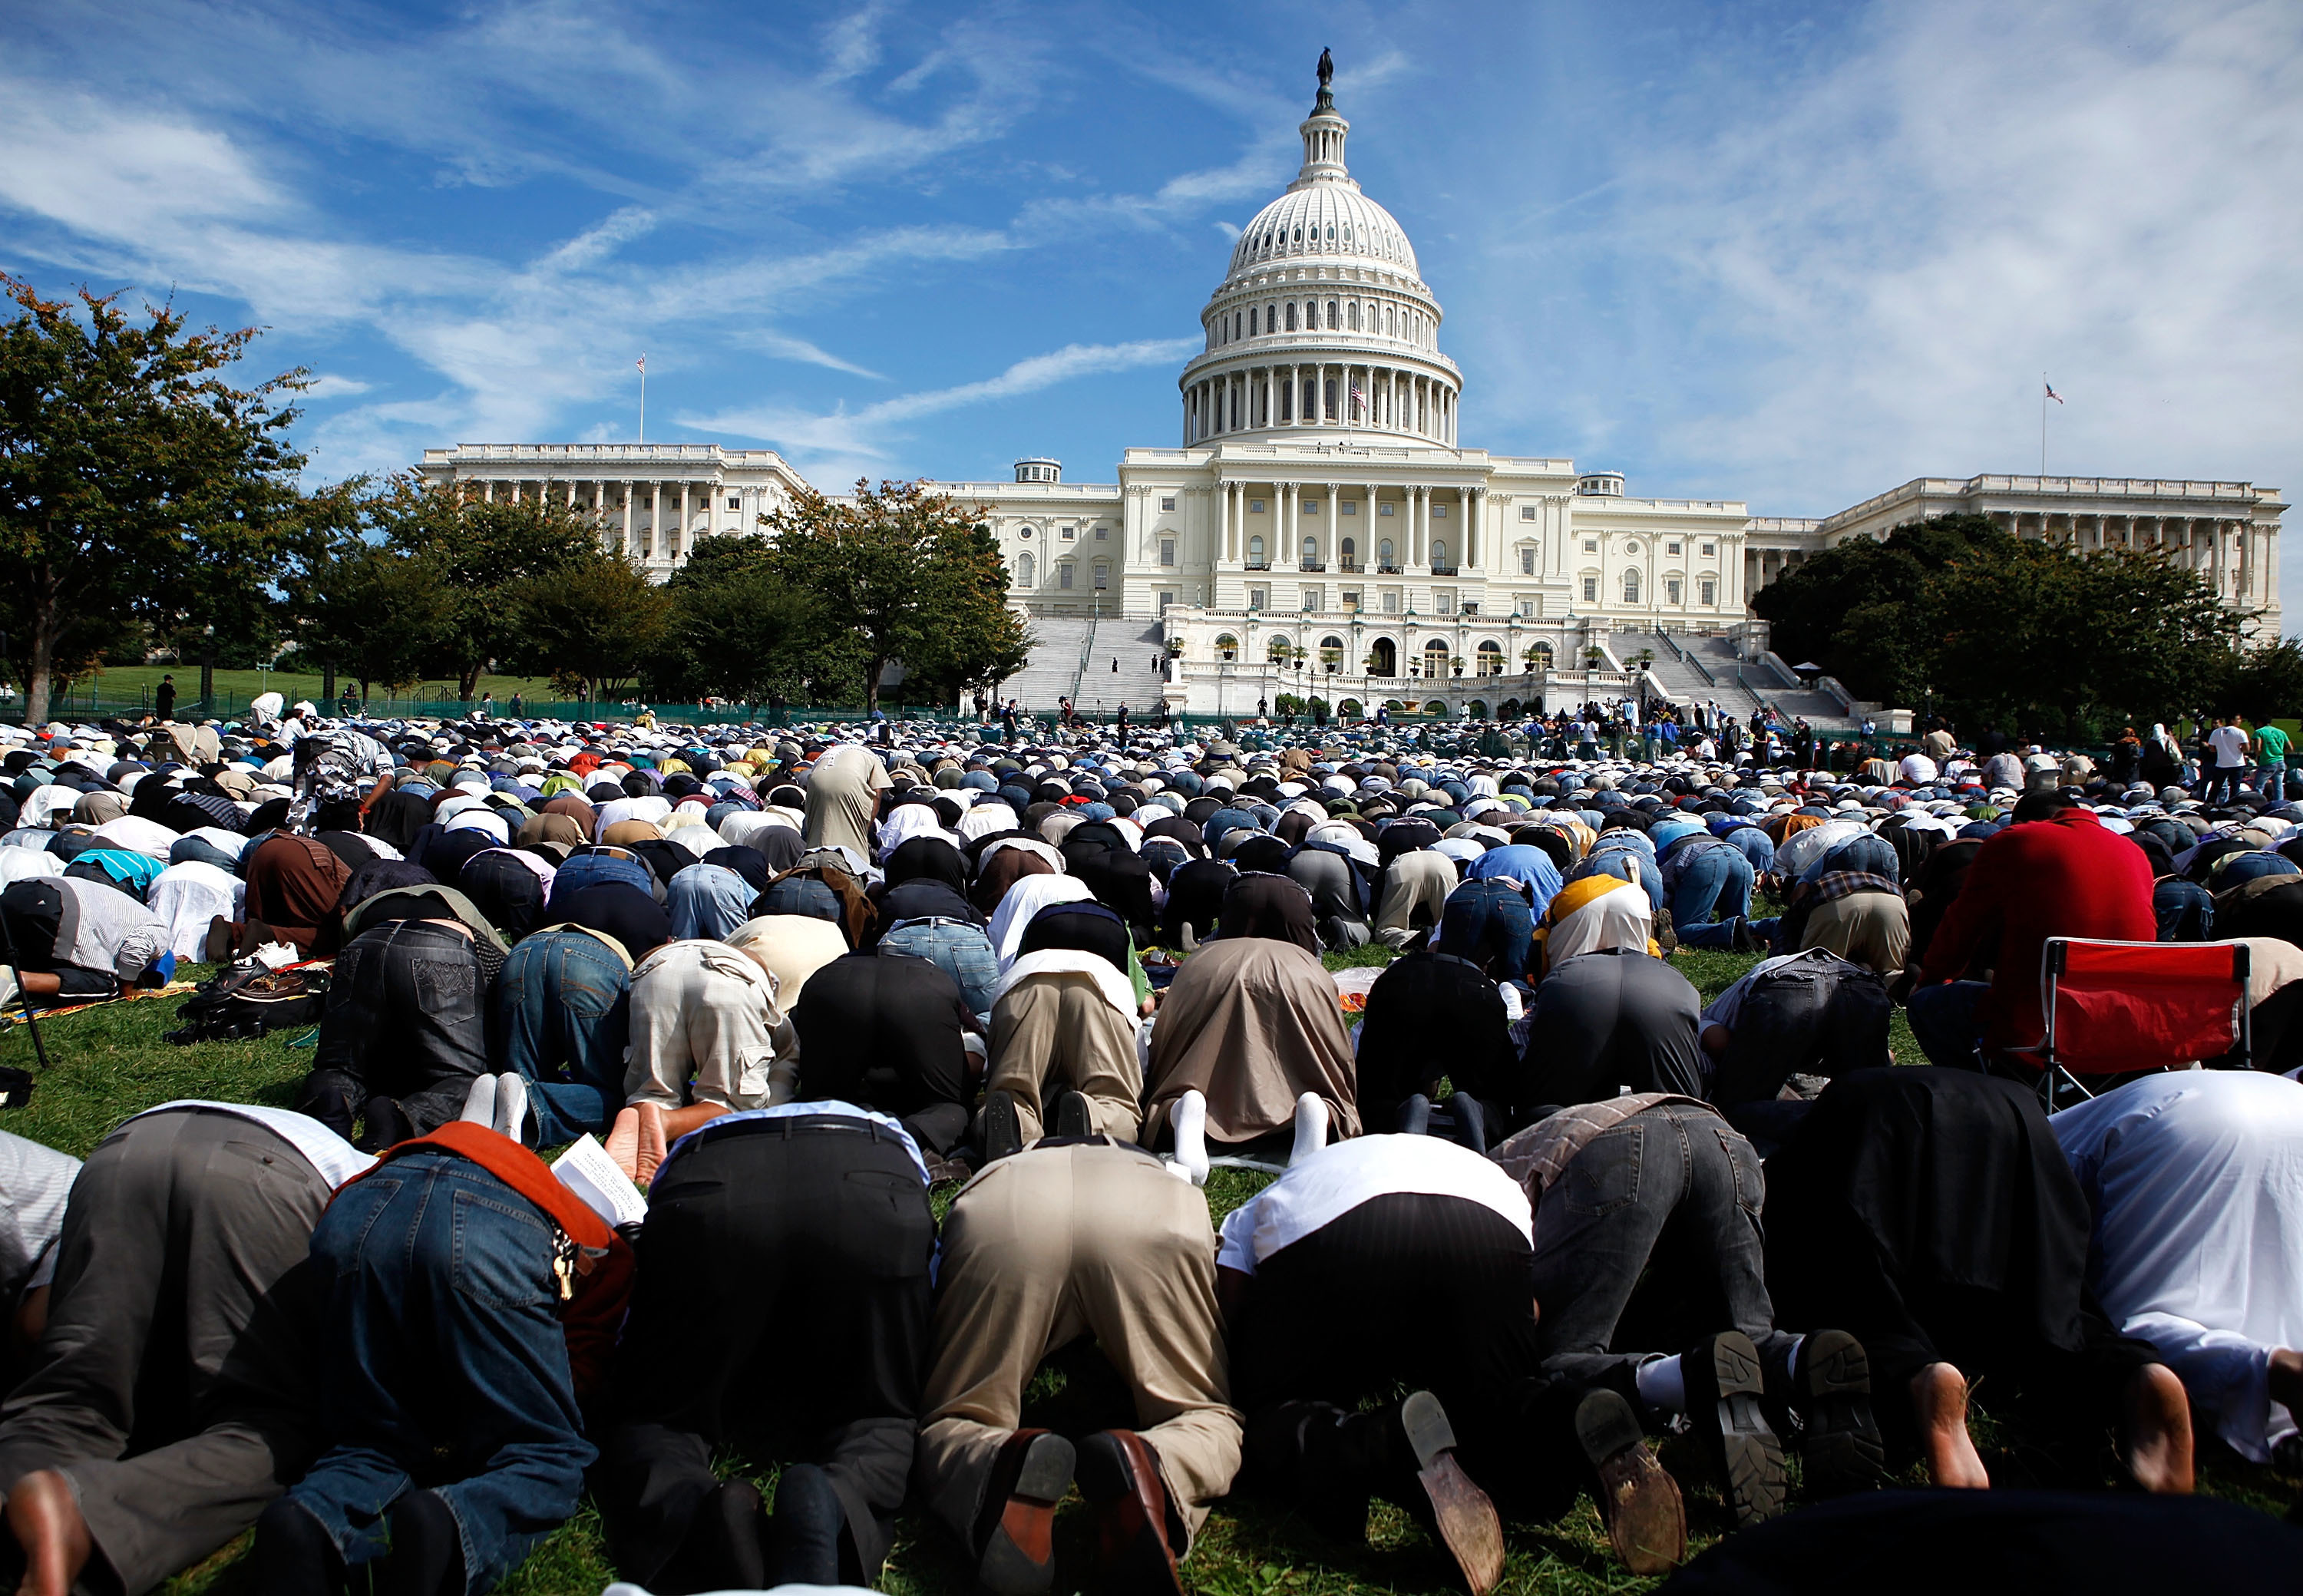 Muslims say prayer during the 'Islam on Capitol Hill 2009' event at the West Front Lawn of the U.S. Capitol September 25, 2009 in Washington, DC. Thousands of Muslims gathered for the event to promote the diversity of Islam.